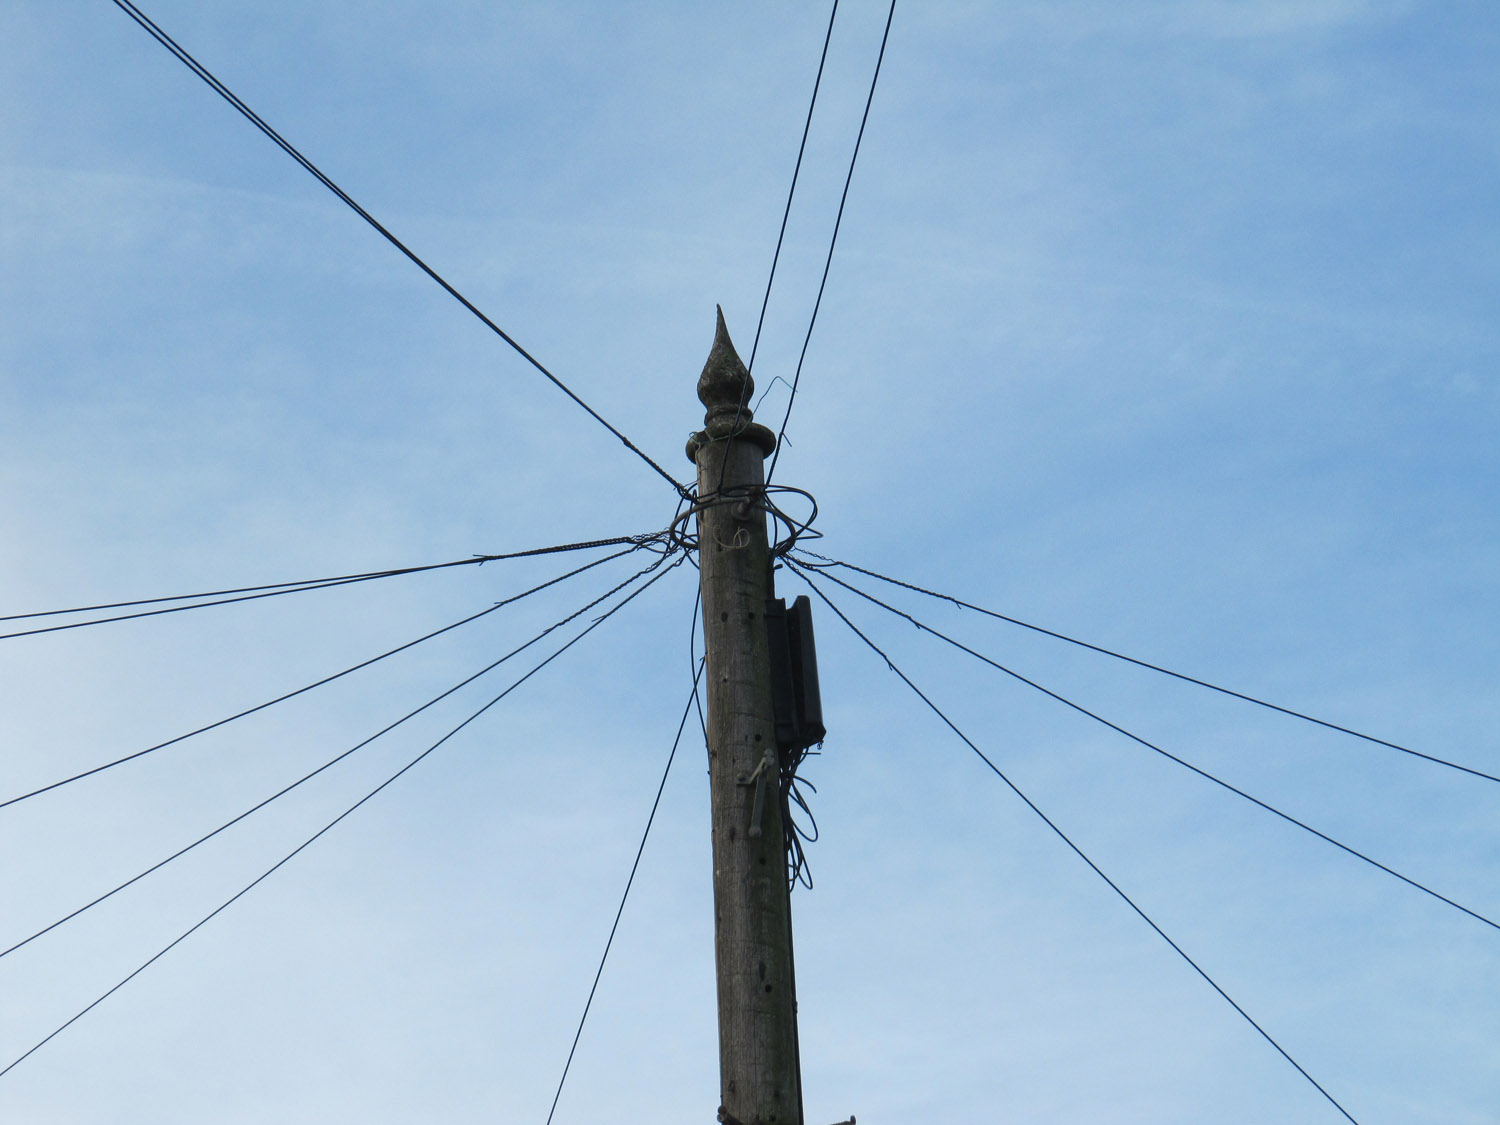 Telephone pole with an ordinary finial on top